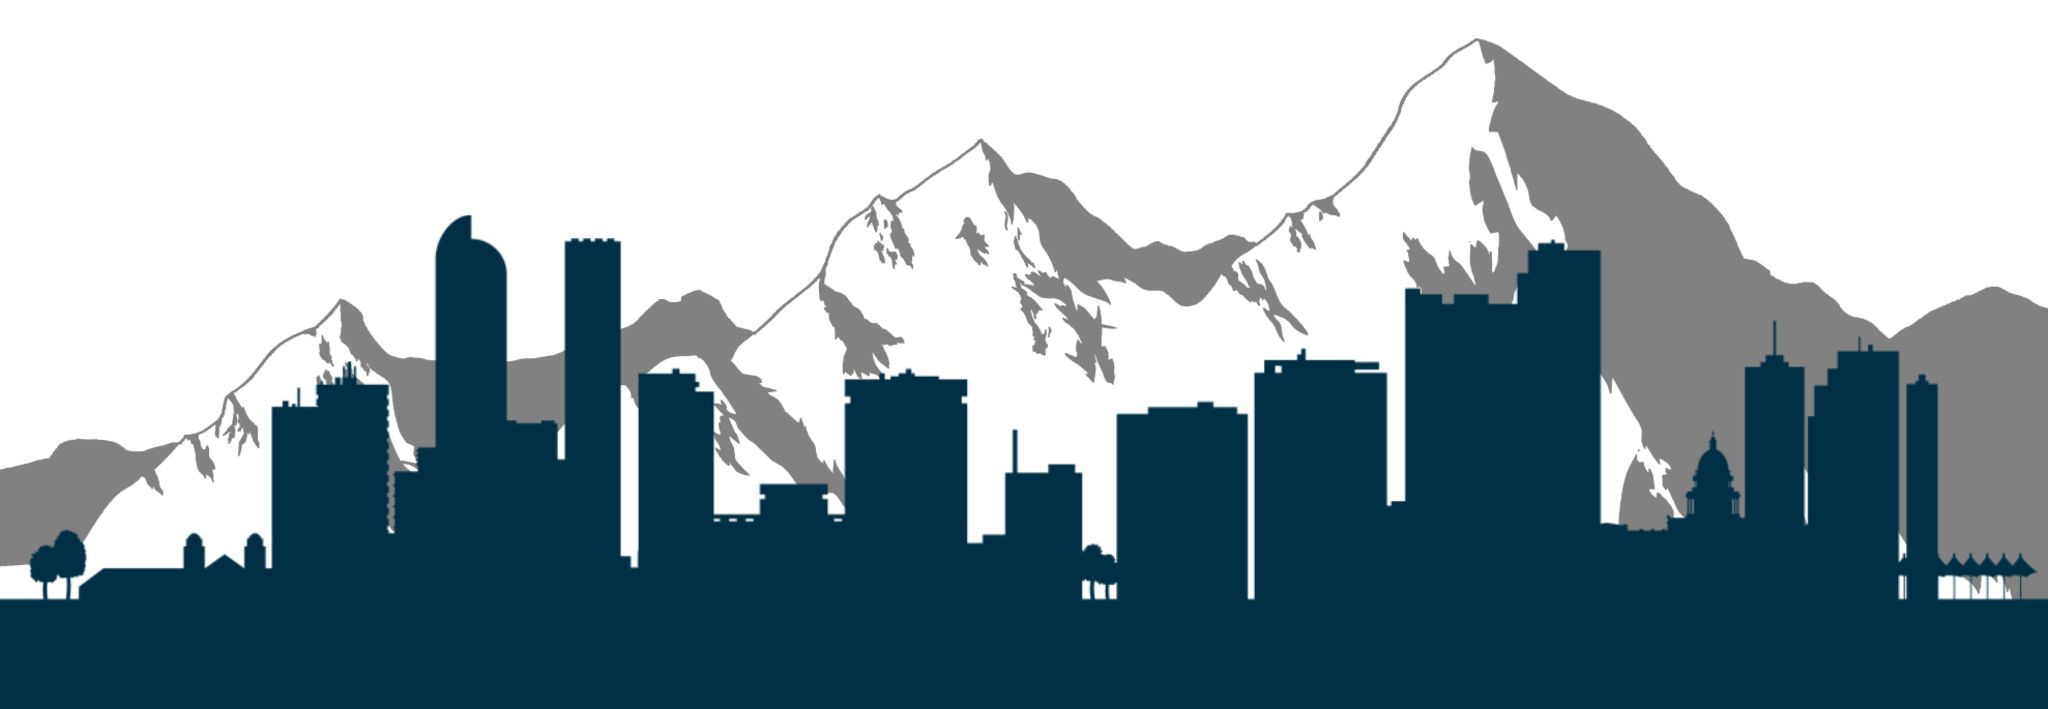 Mountain and city artwork signified the city of Denver and mountains of Colorado.